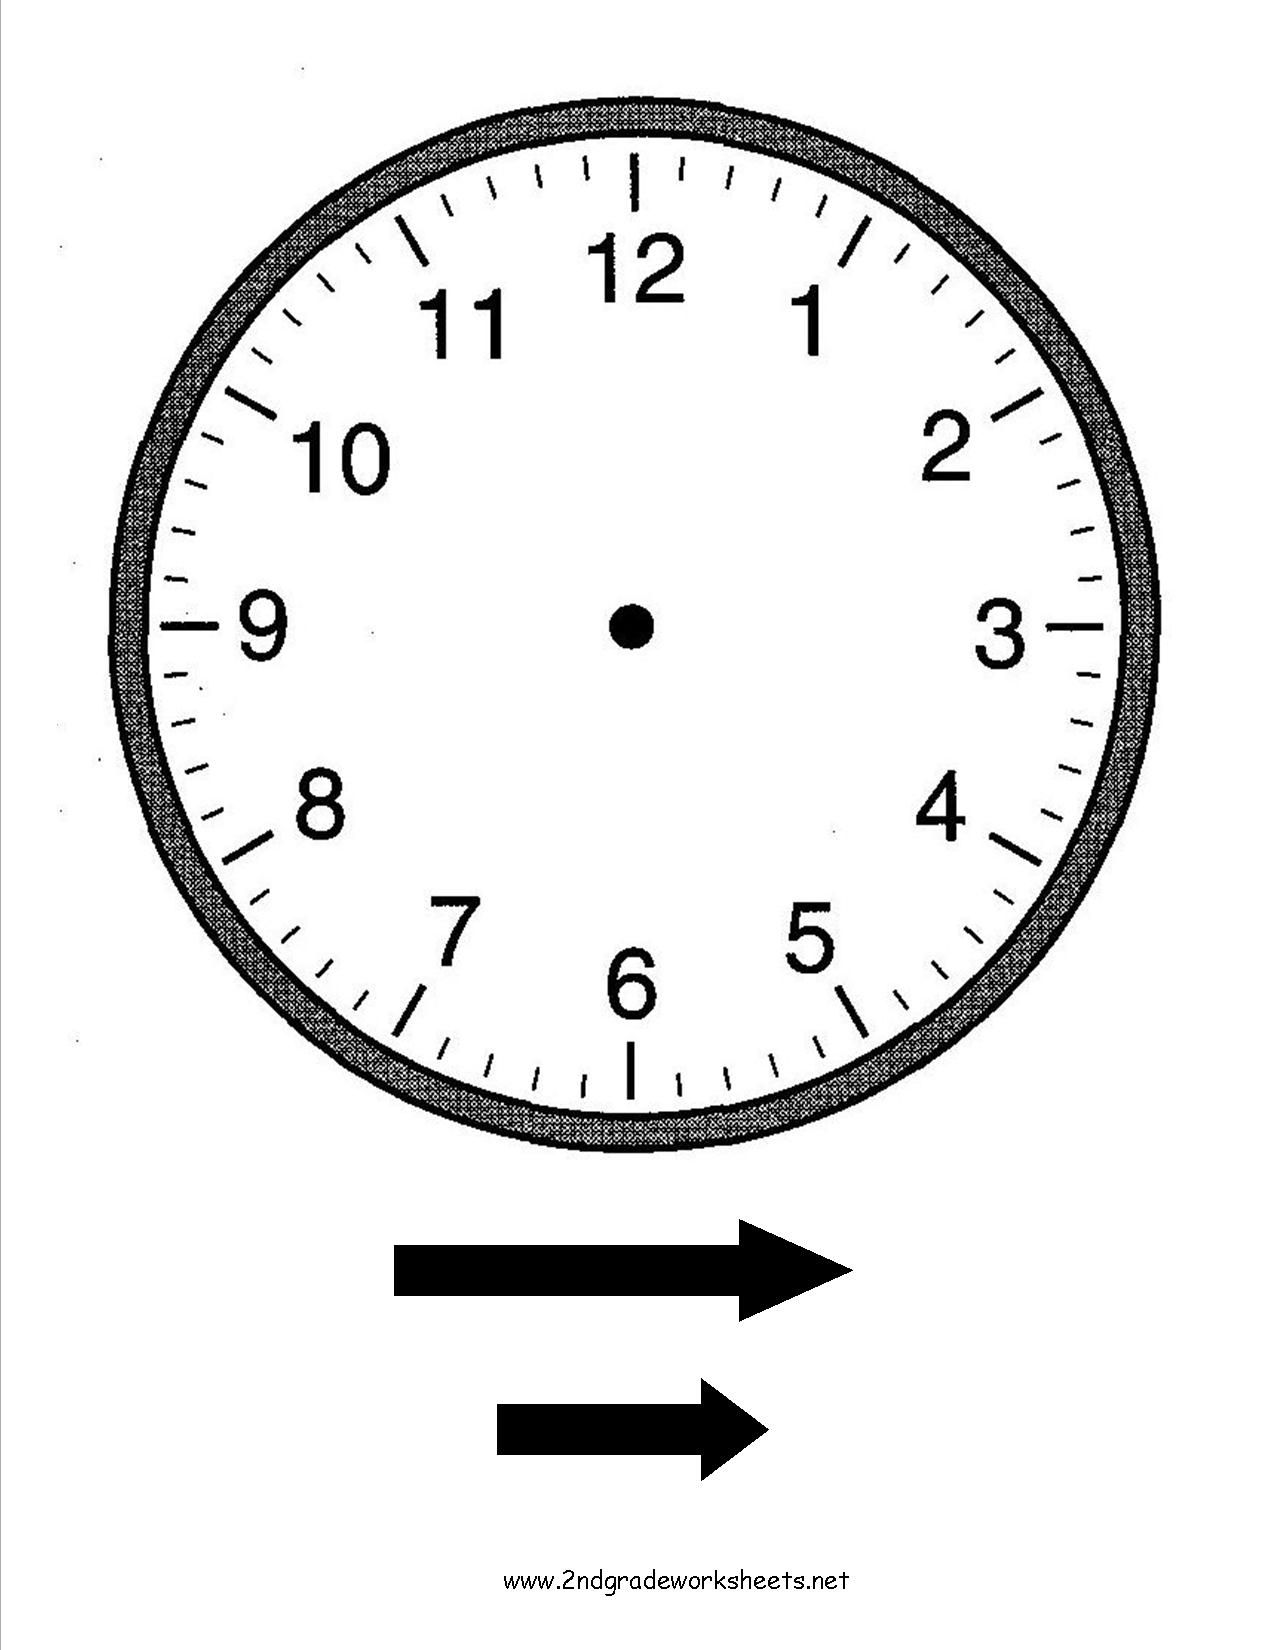 Fill In The Blank Clock Worksheets